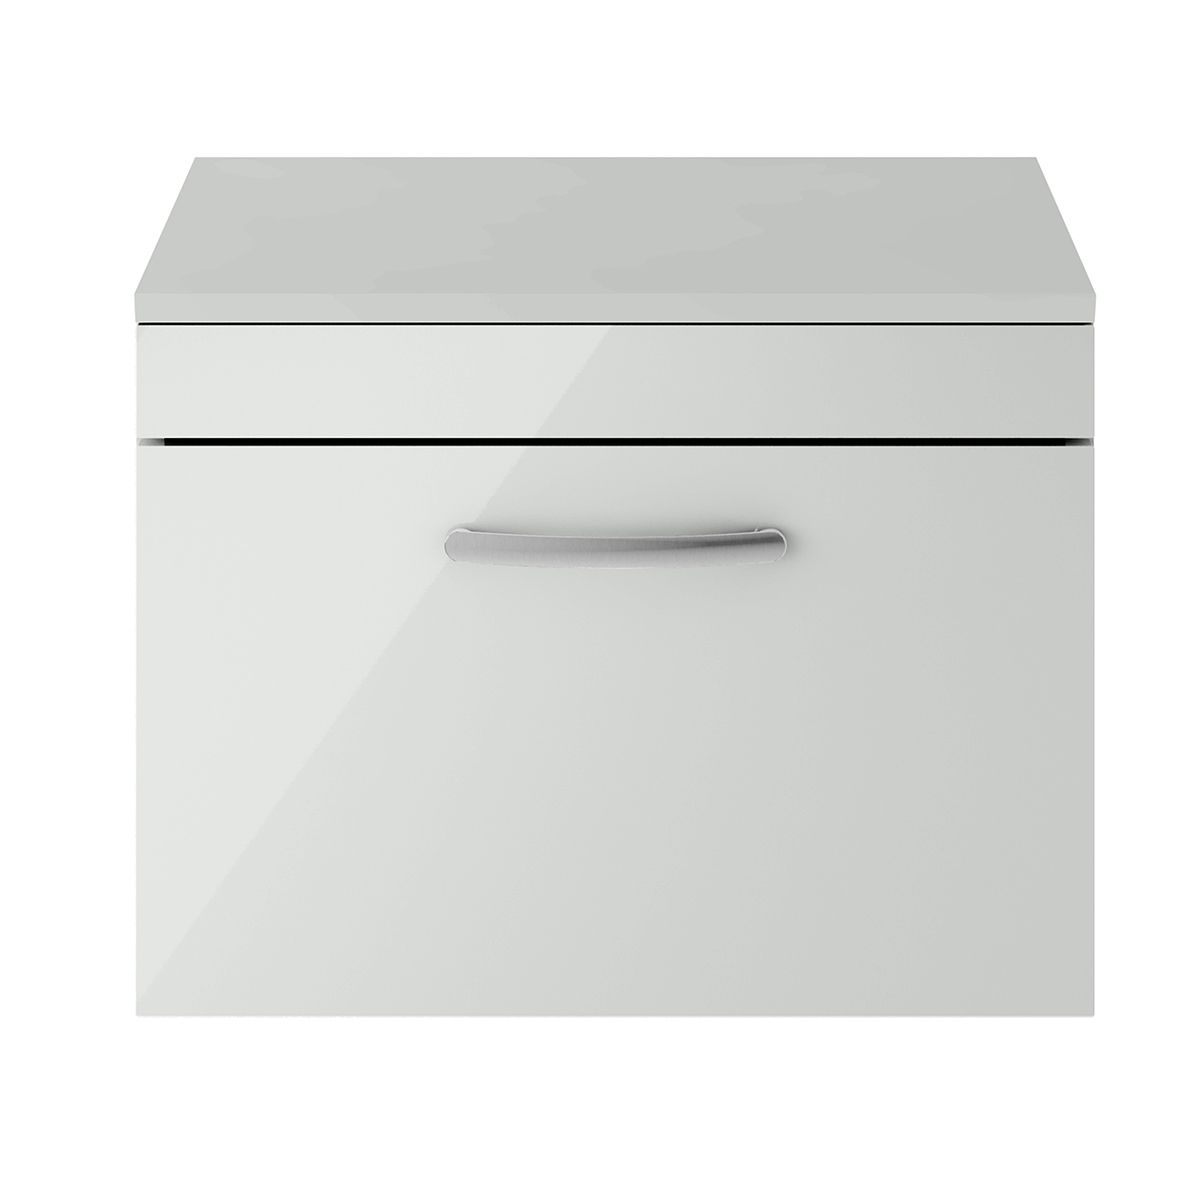 Nuie Athena Gloss Grey Mist 1 Drawer Wall Hung Unit 600mm with Worktop